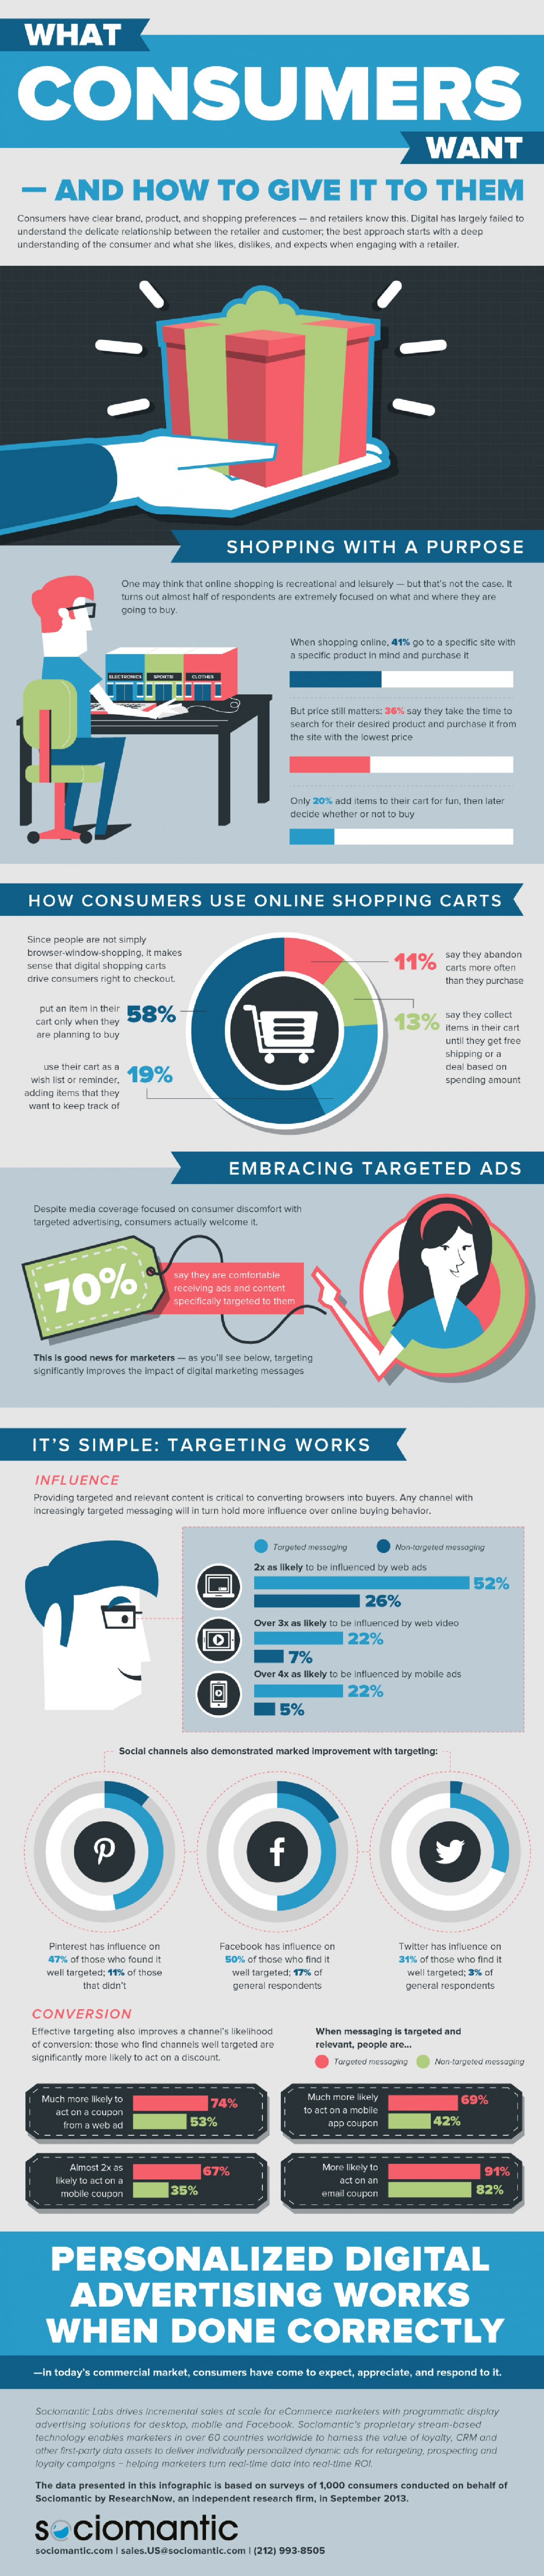 What Consumers Want and How to Give it to Them Infographic